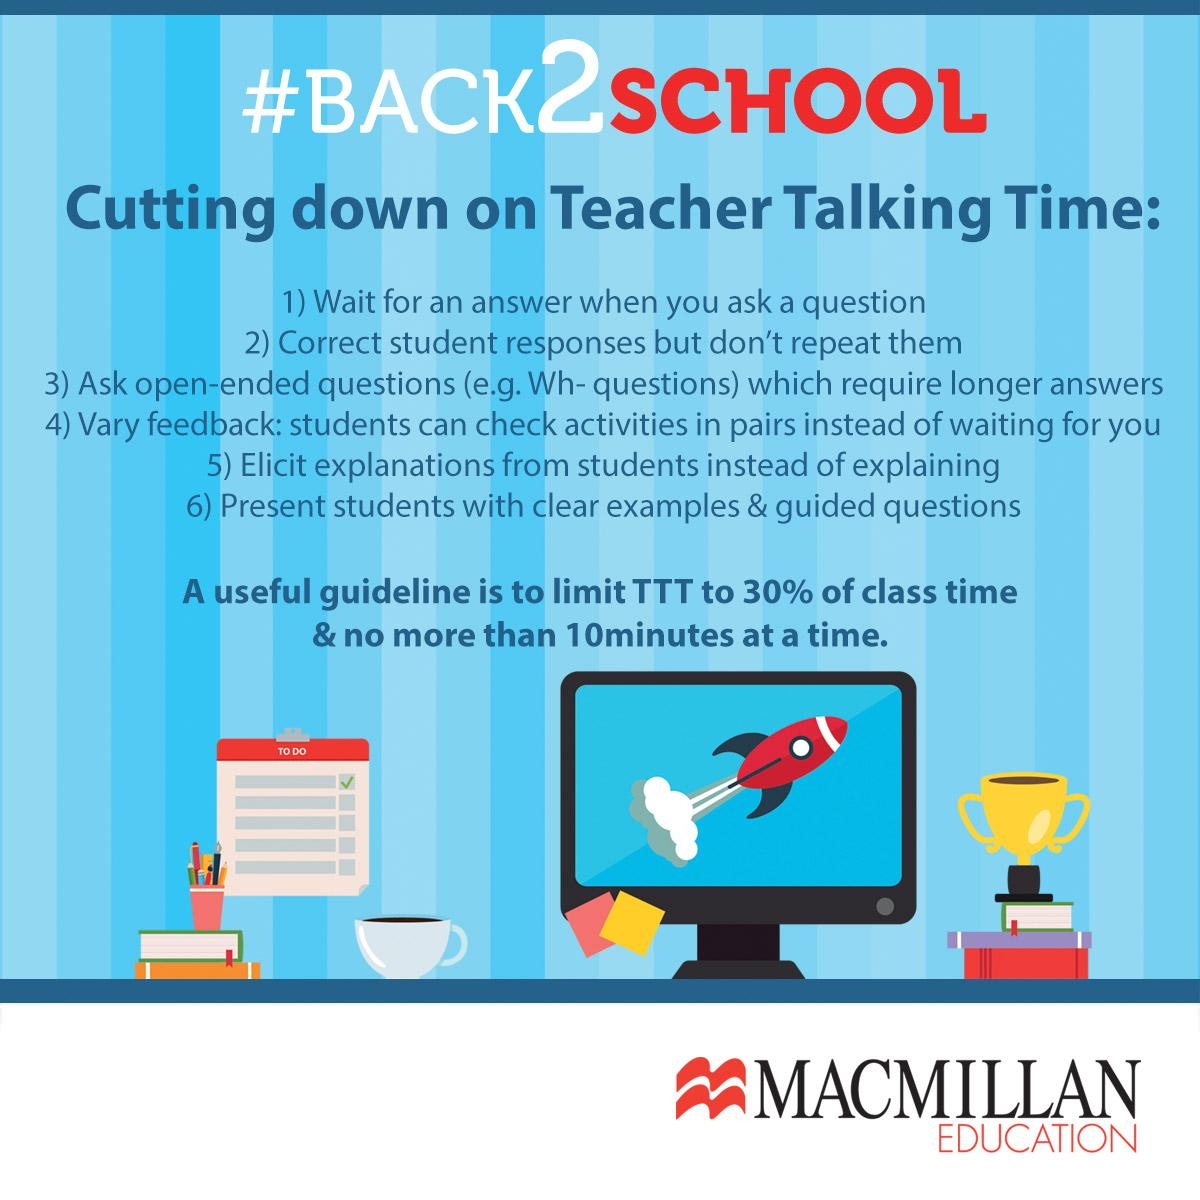 Reducing teacher talk time